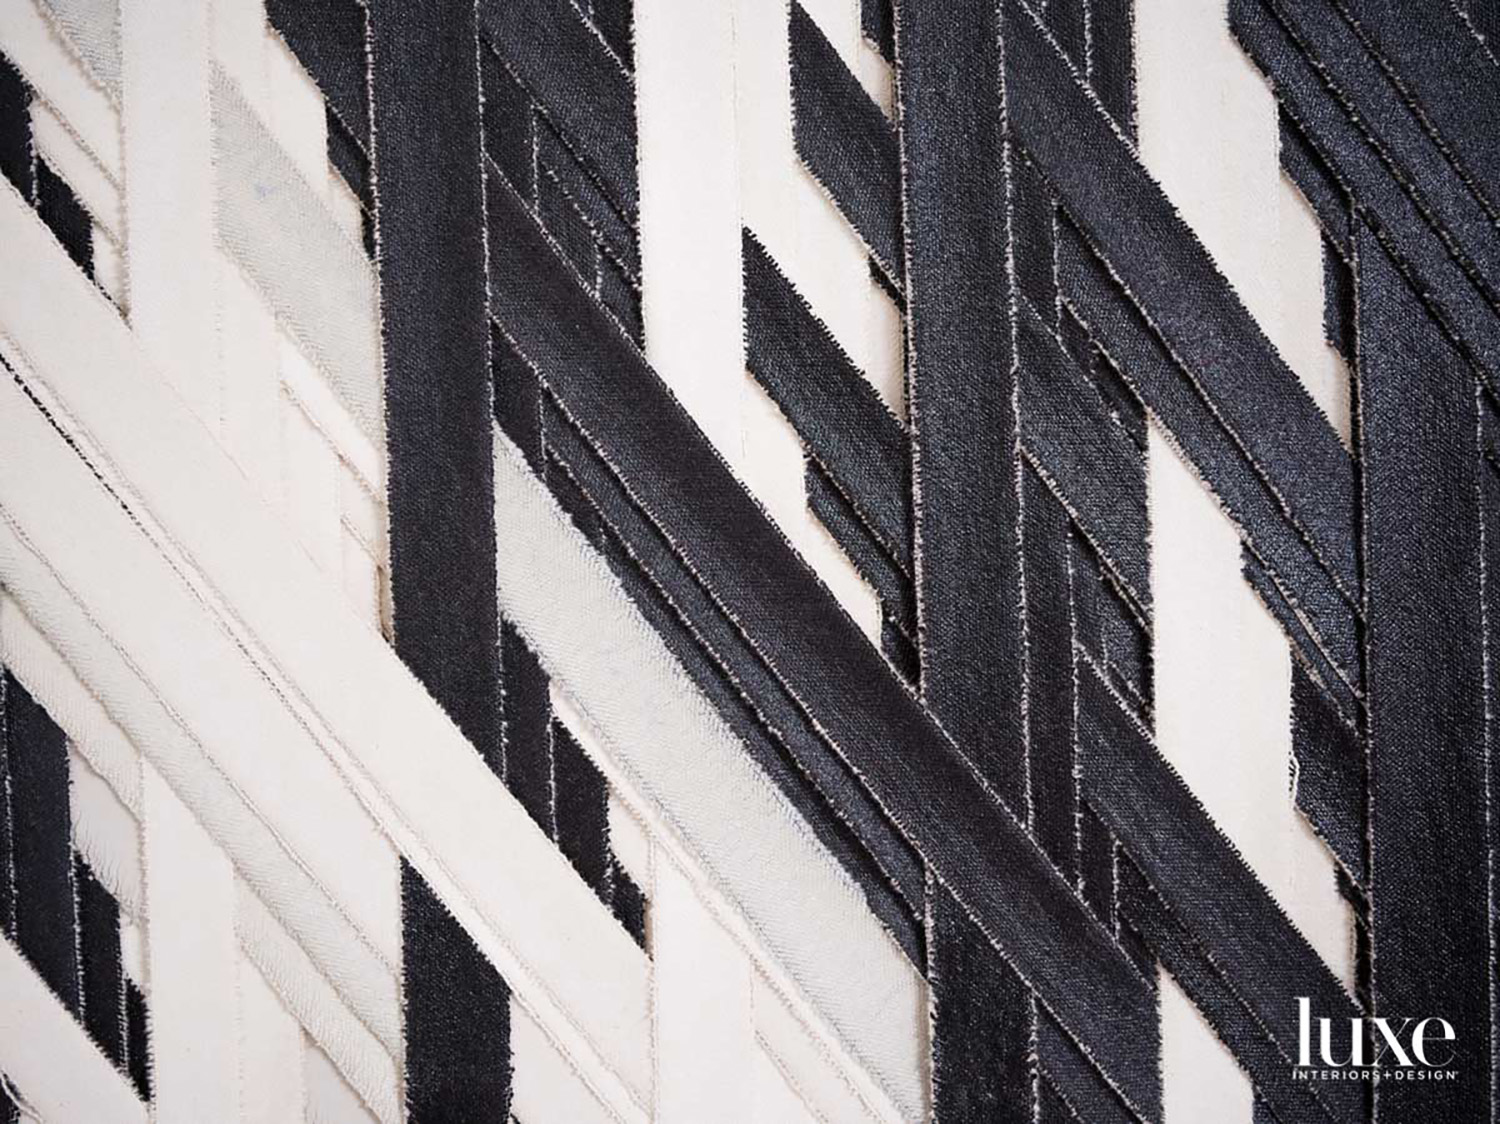 Black-and-white canvas strips woven together.